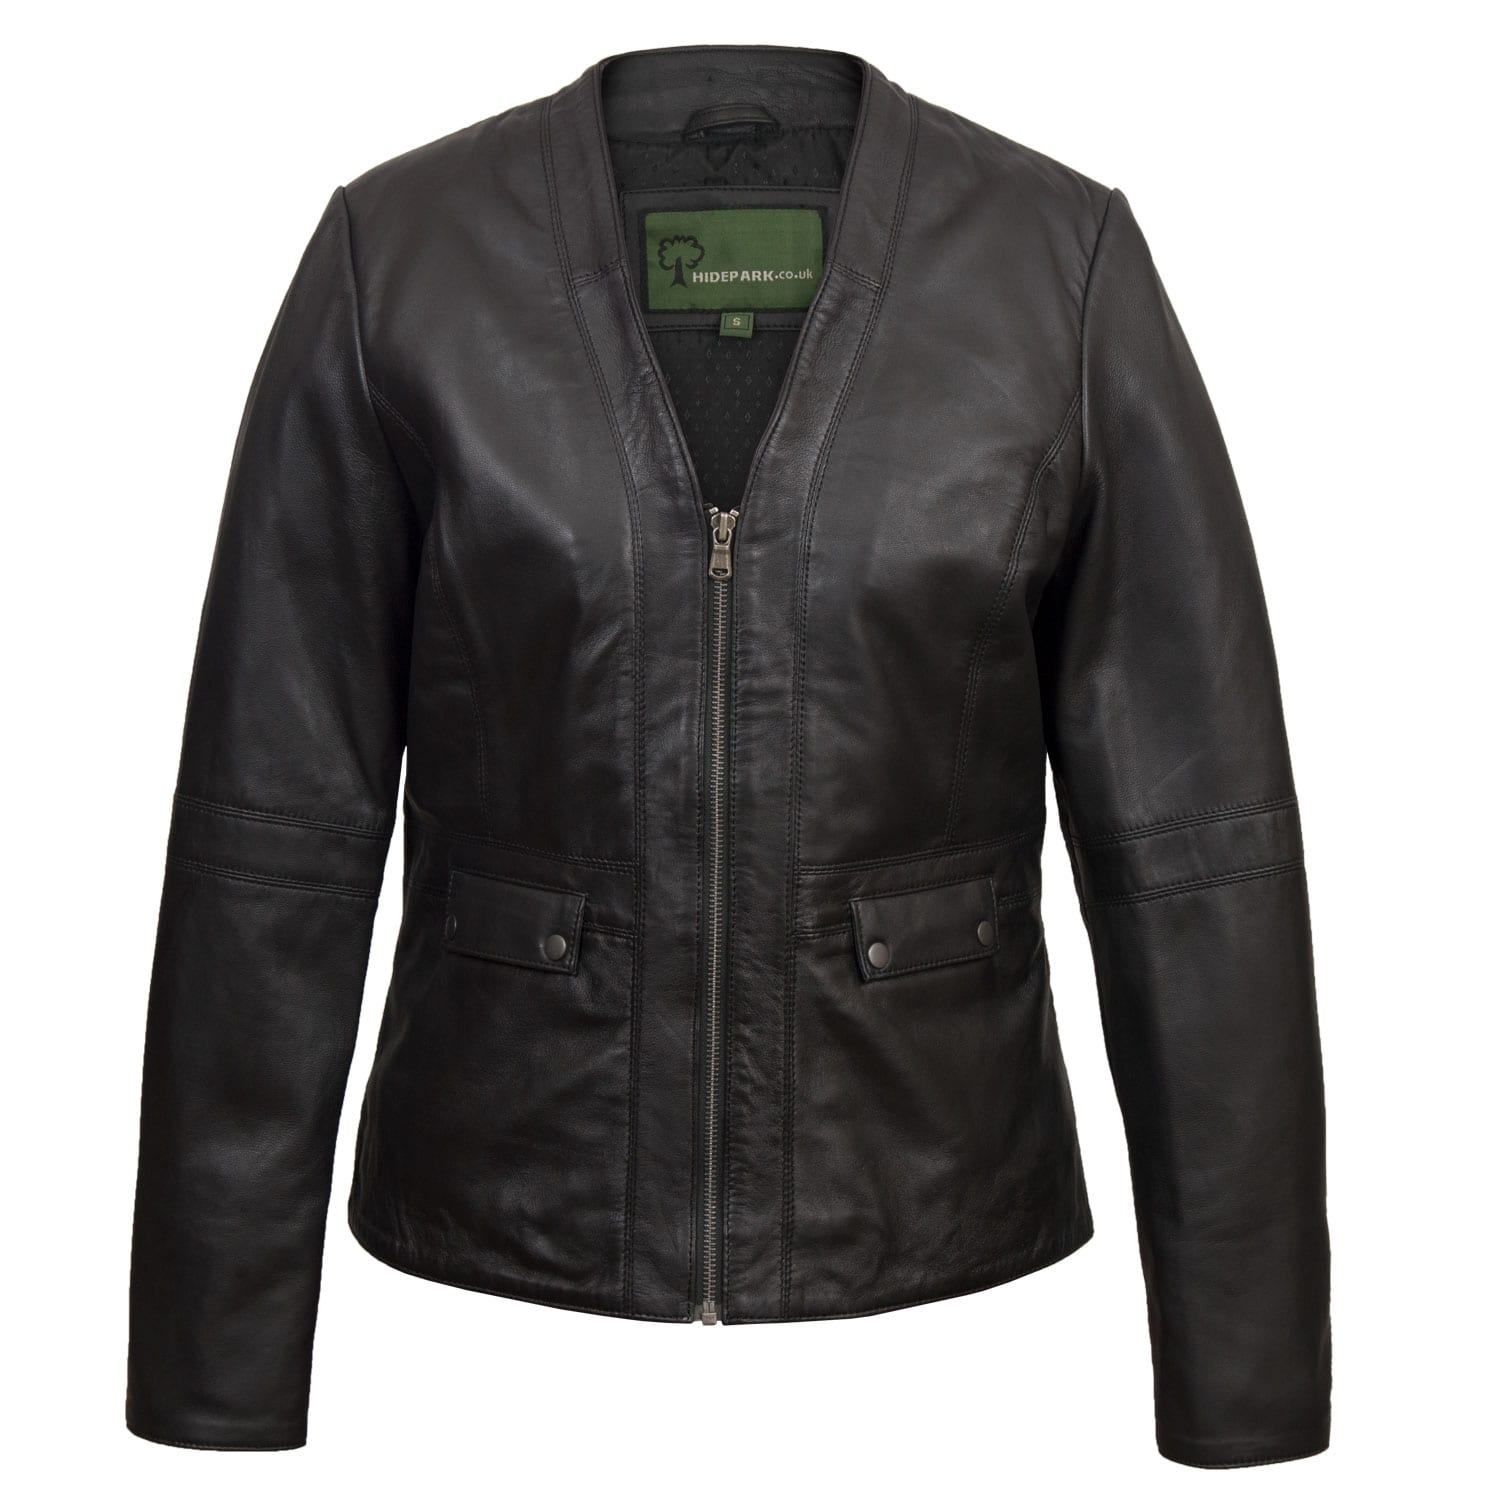 Women's Collarless Black Leather Jacket: Jo